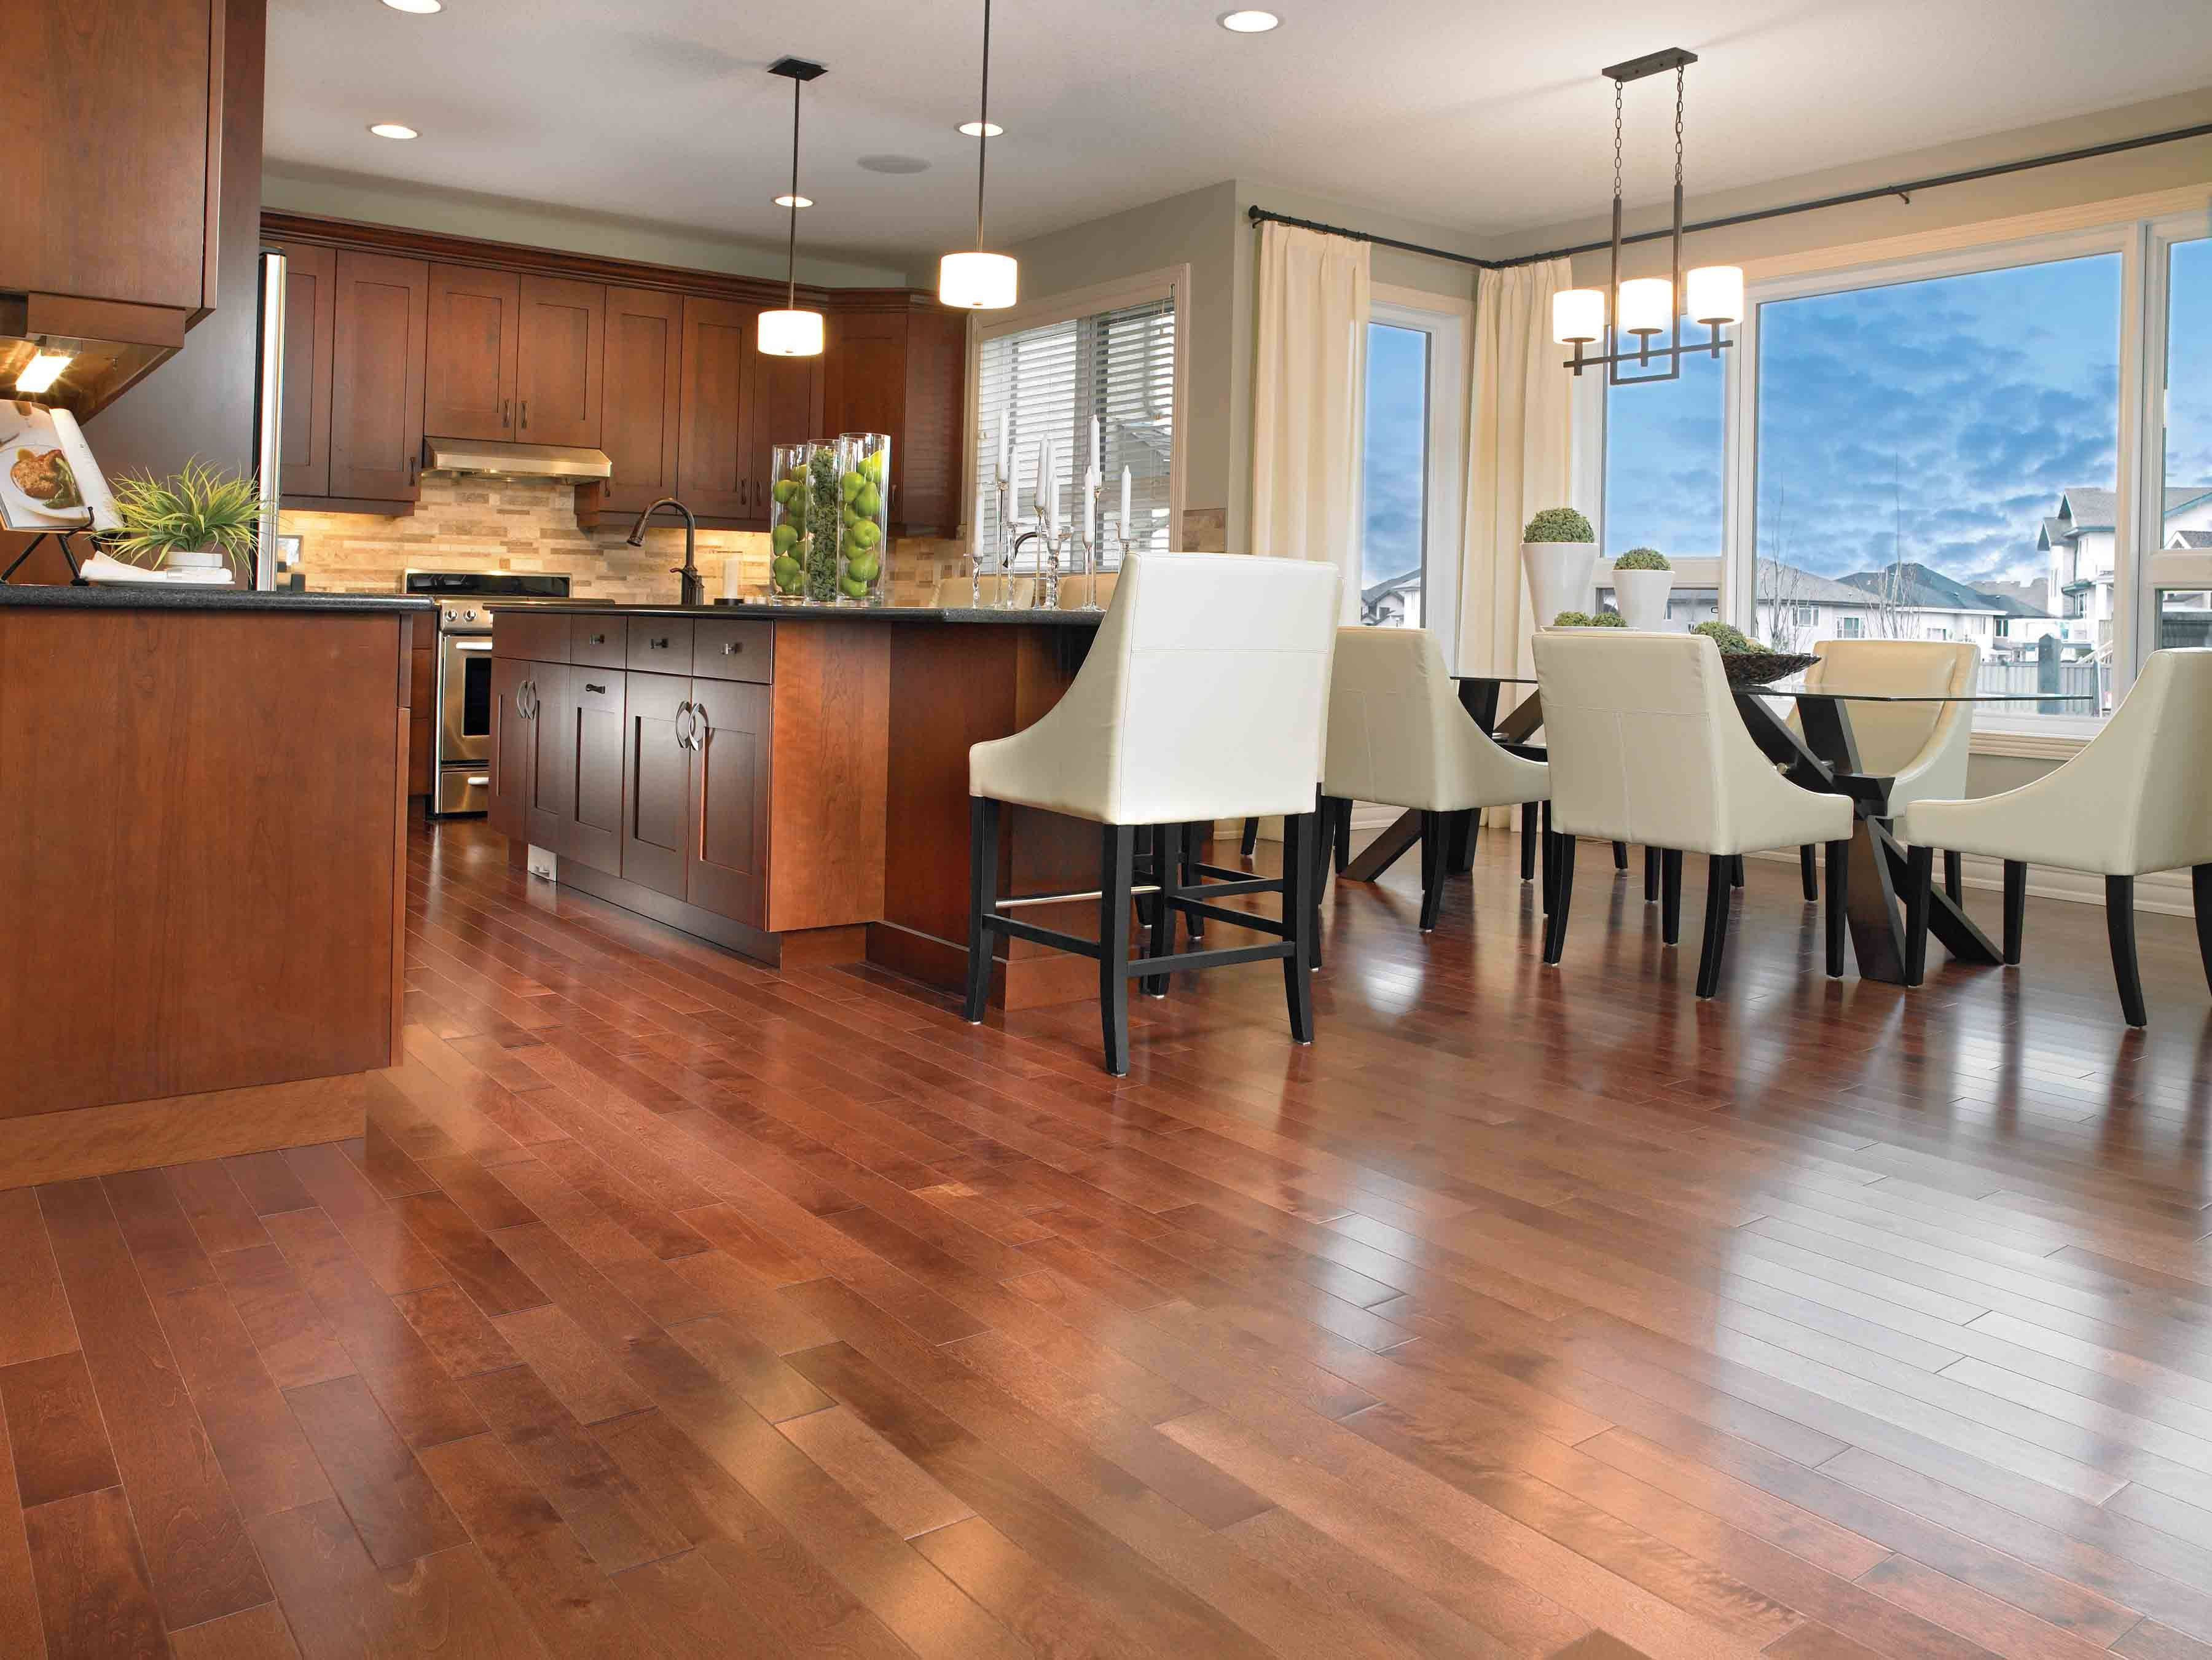 13 Amazing ash Hardwood Flooring 2021 free download ash hardwood flooring of flooring nj furniture design hard wood flooring new 0d grace place with regard to flooring nj furniture design hard wood flooring new 0d grace place barnegat nj